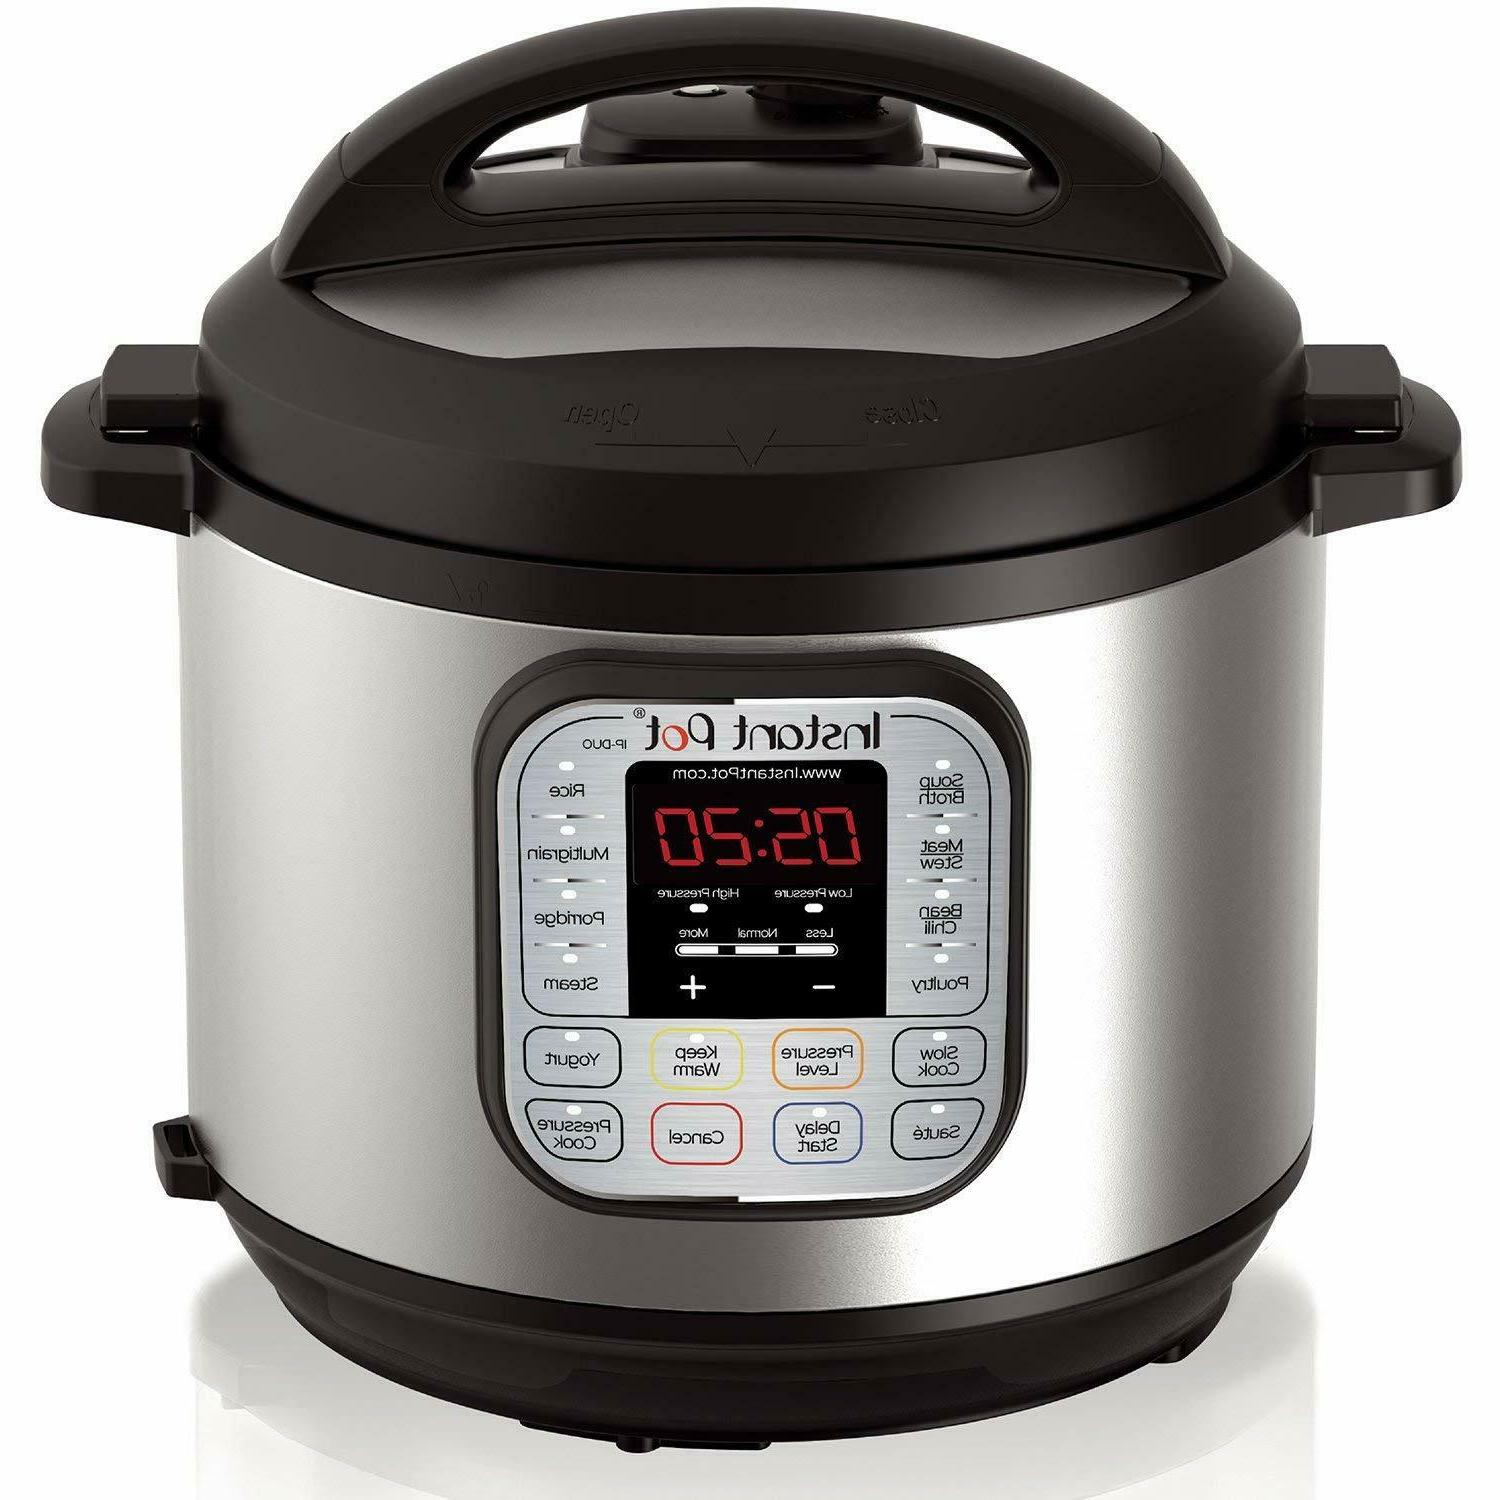 Pressure Cooker Stainless Steel Electric Power Best 6 Quart